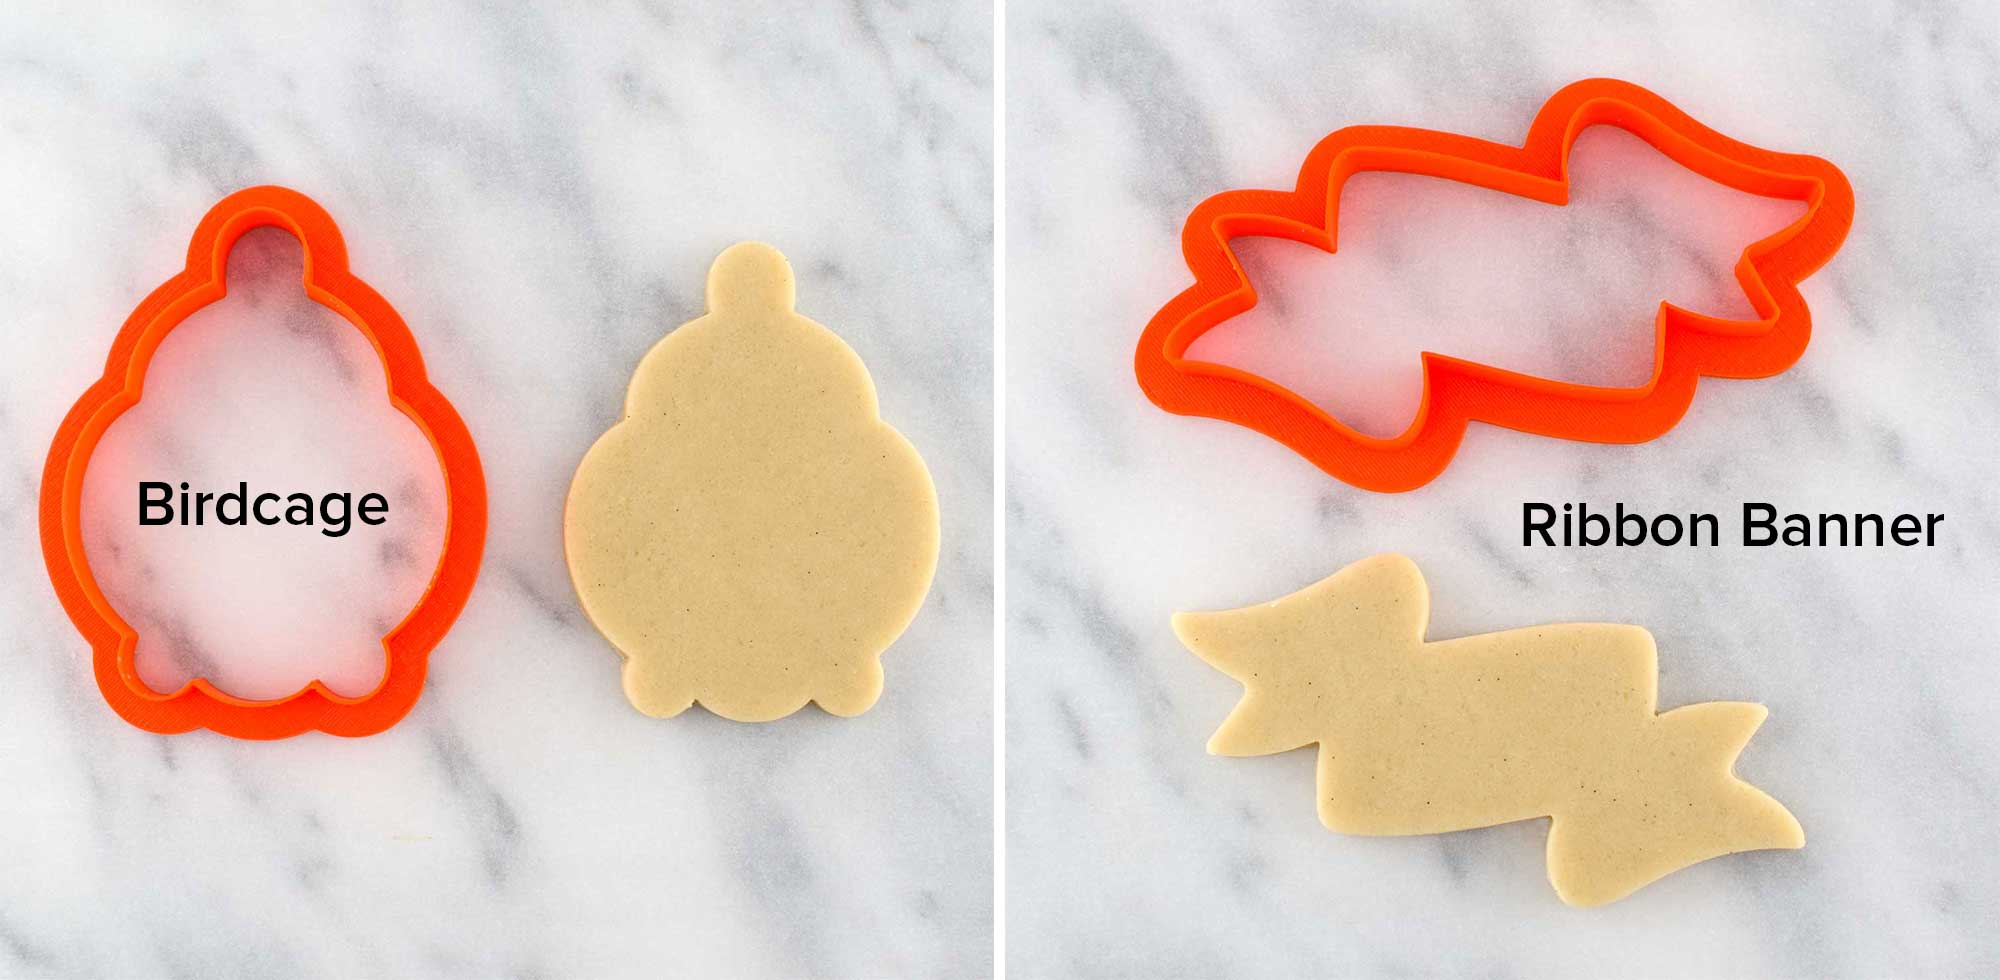 birdcage and ribbon banner cookie cutters